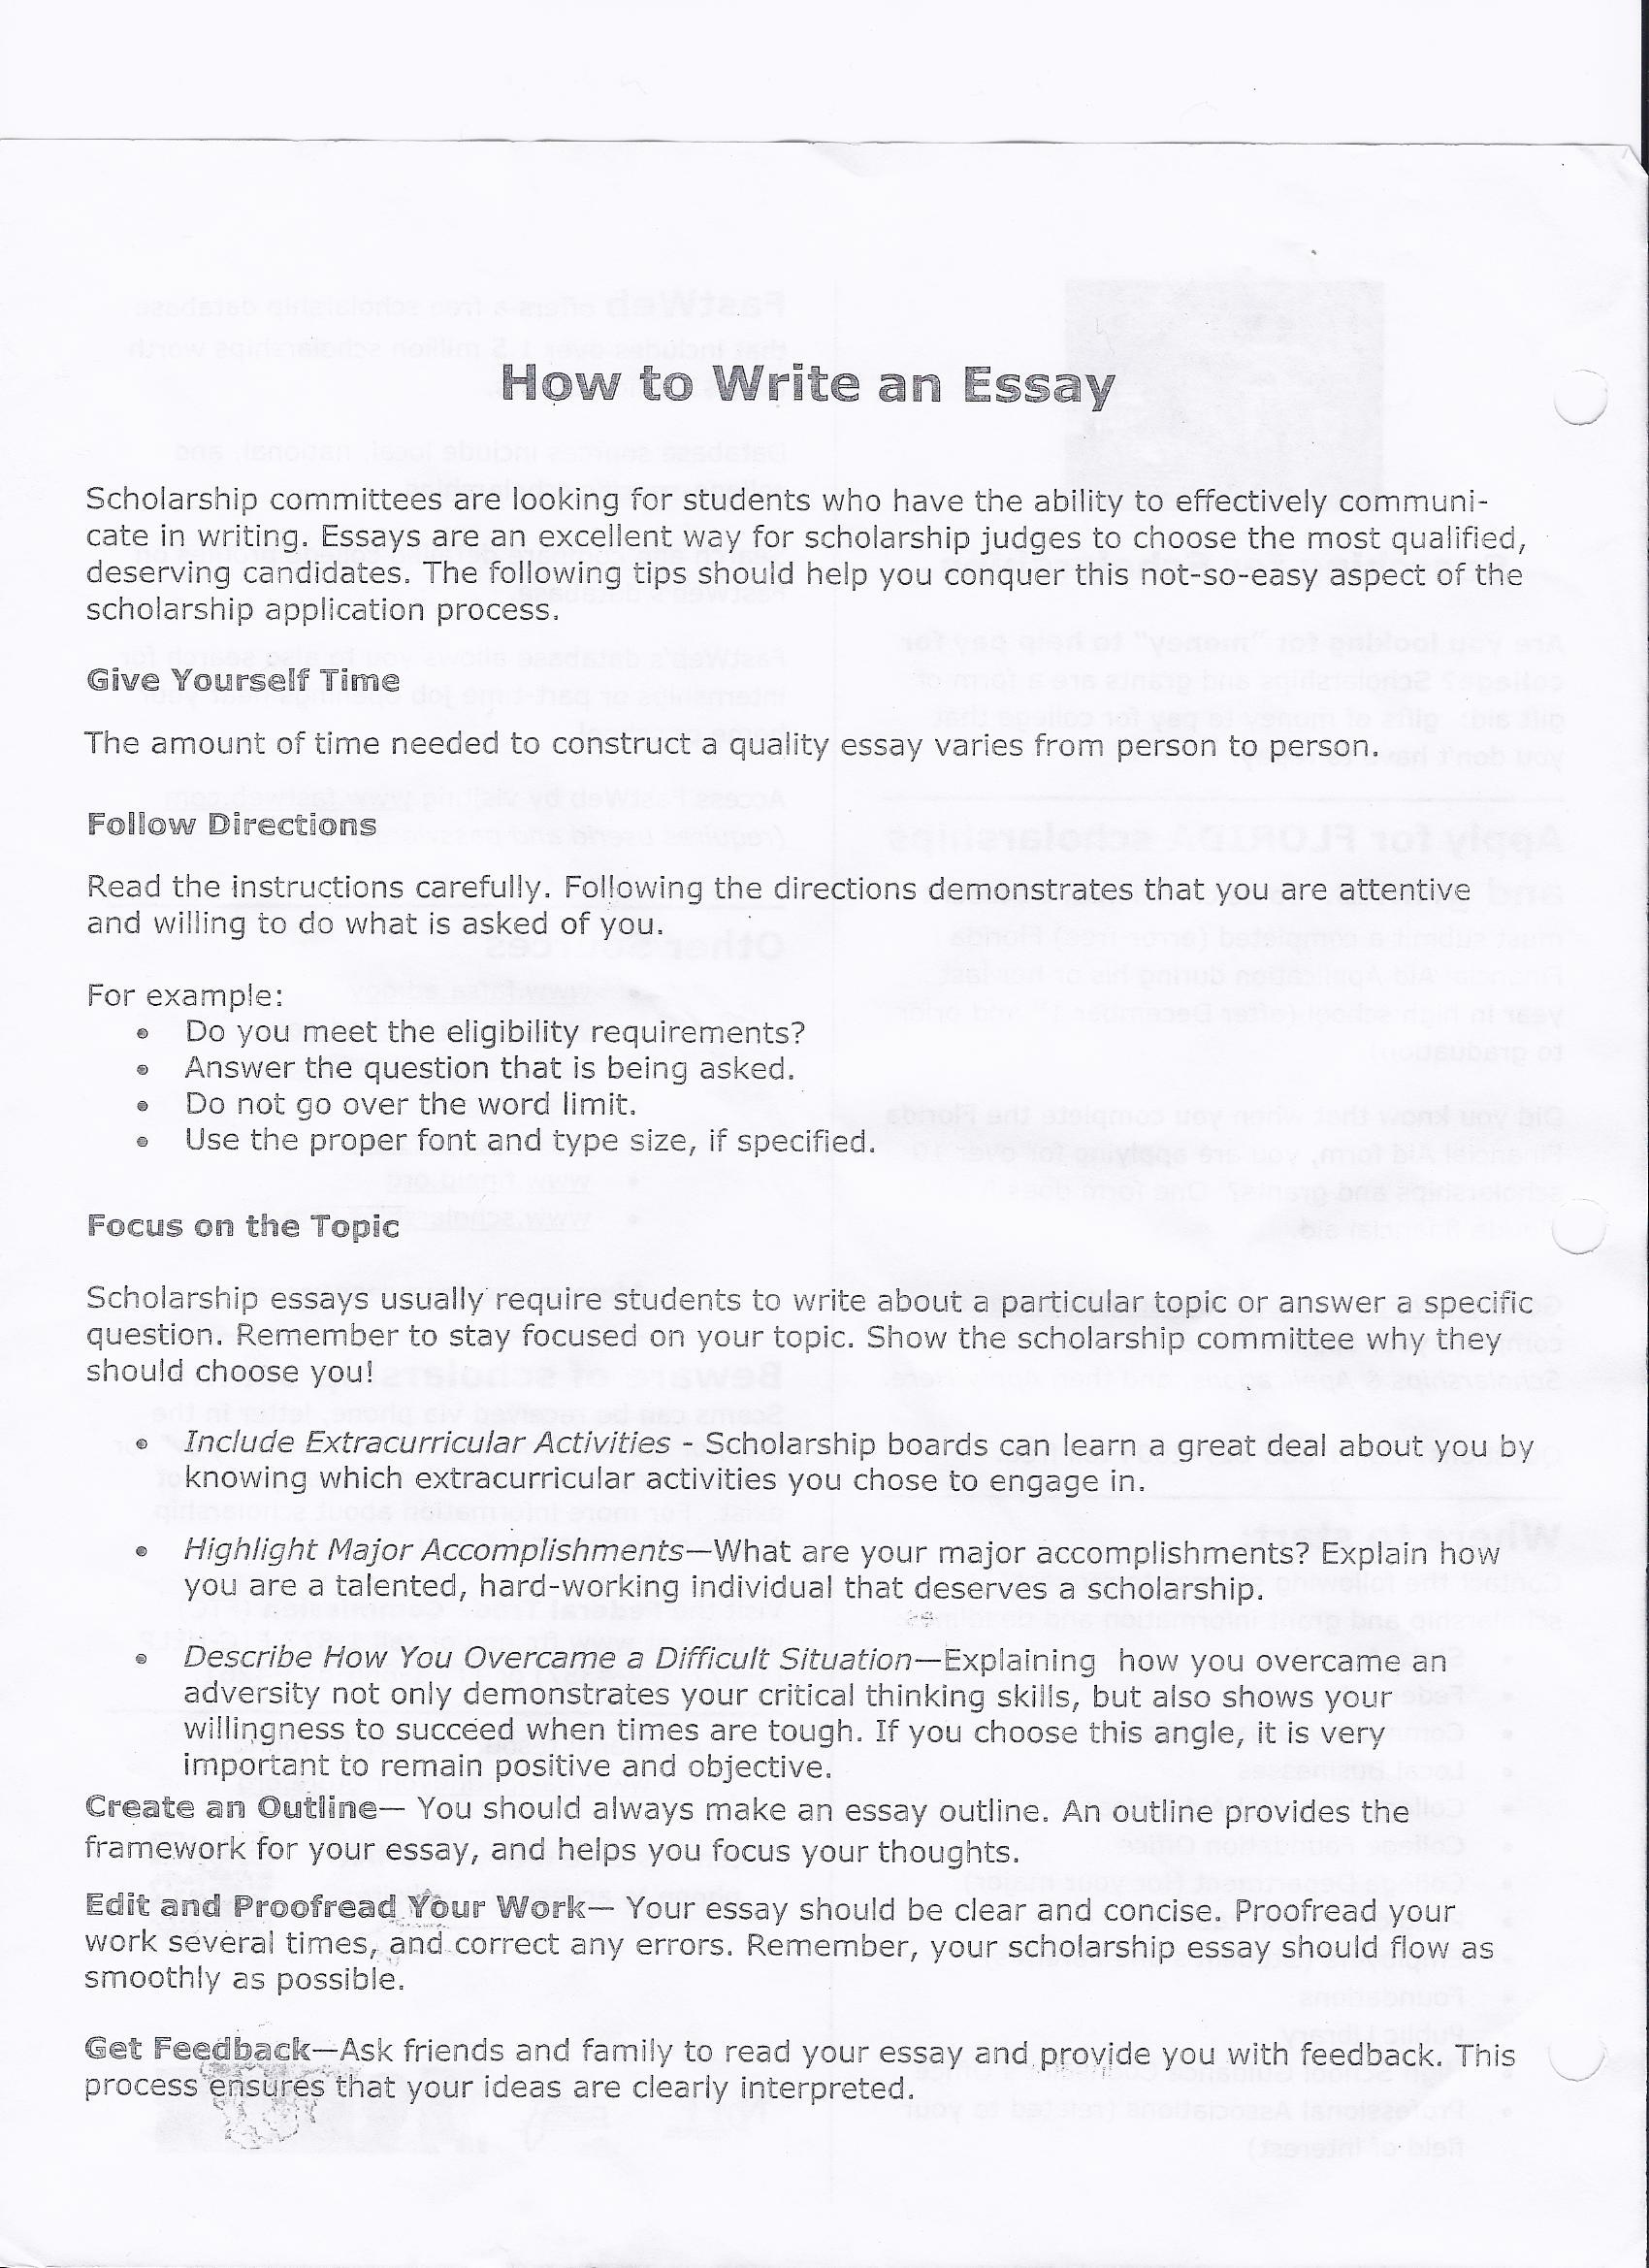 jekyll and hyde essay management information systems essay  management information systems essay dissertation on aslyum college essay in past or present tense